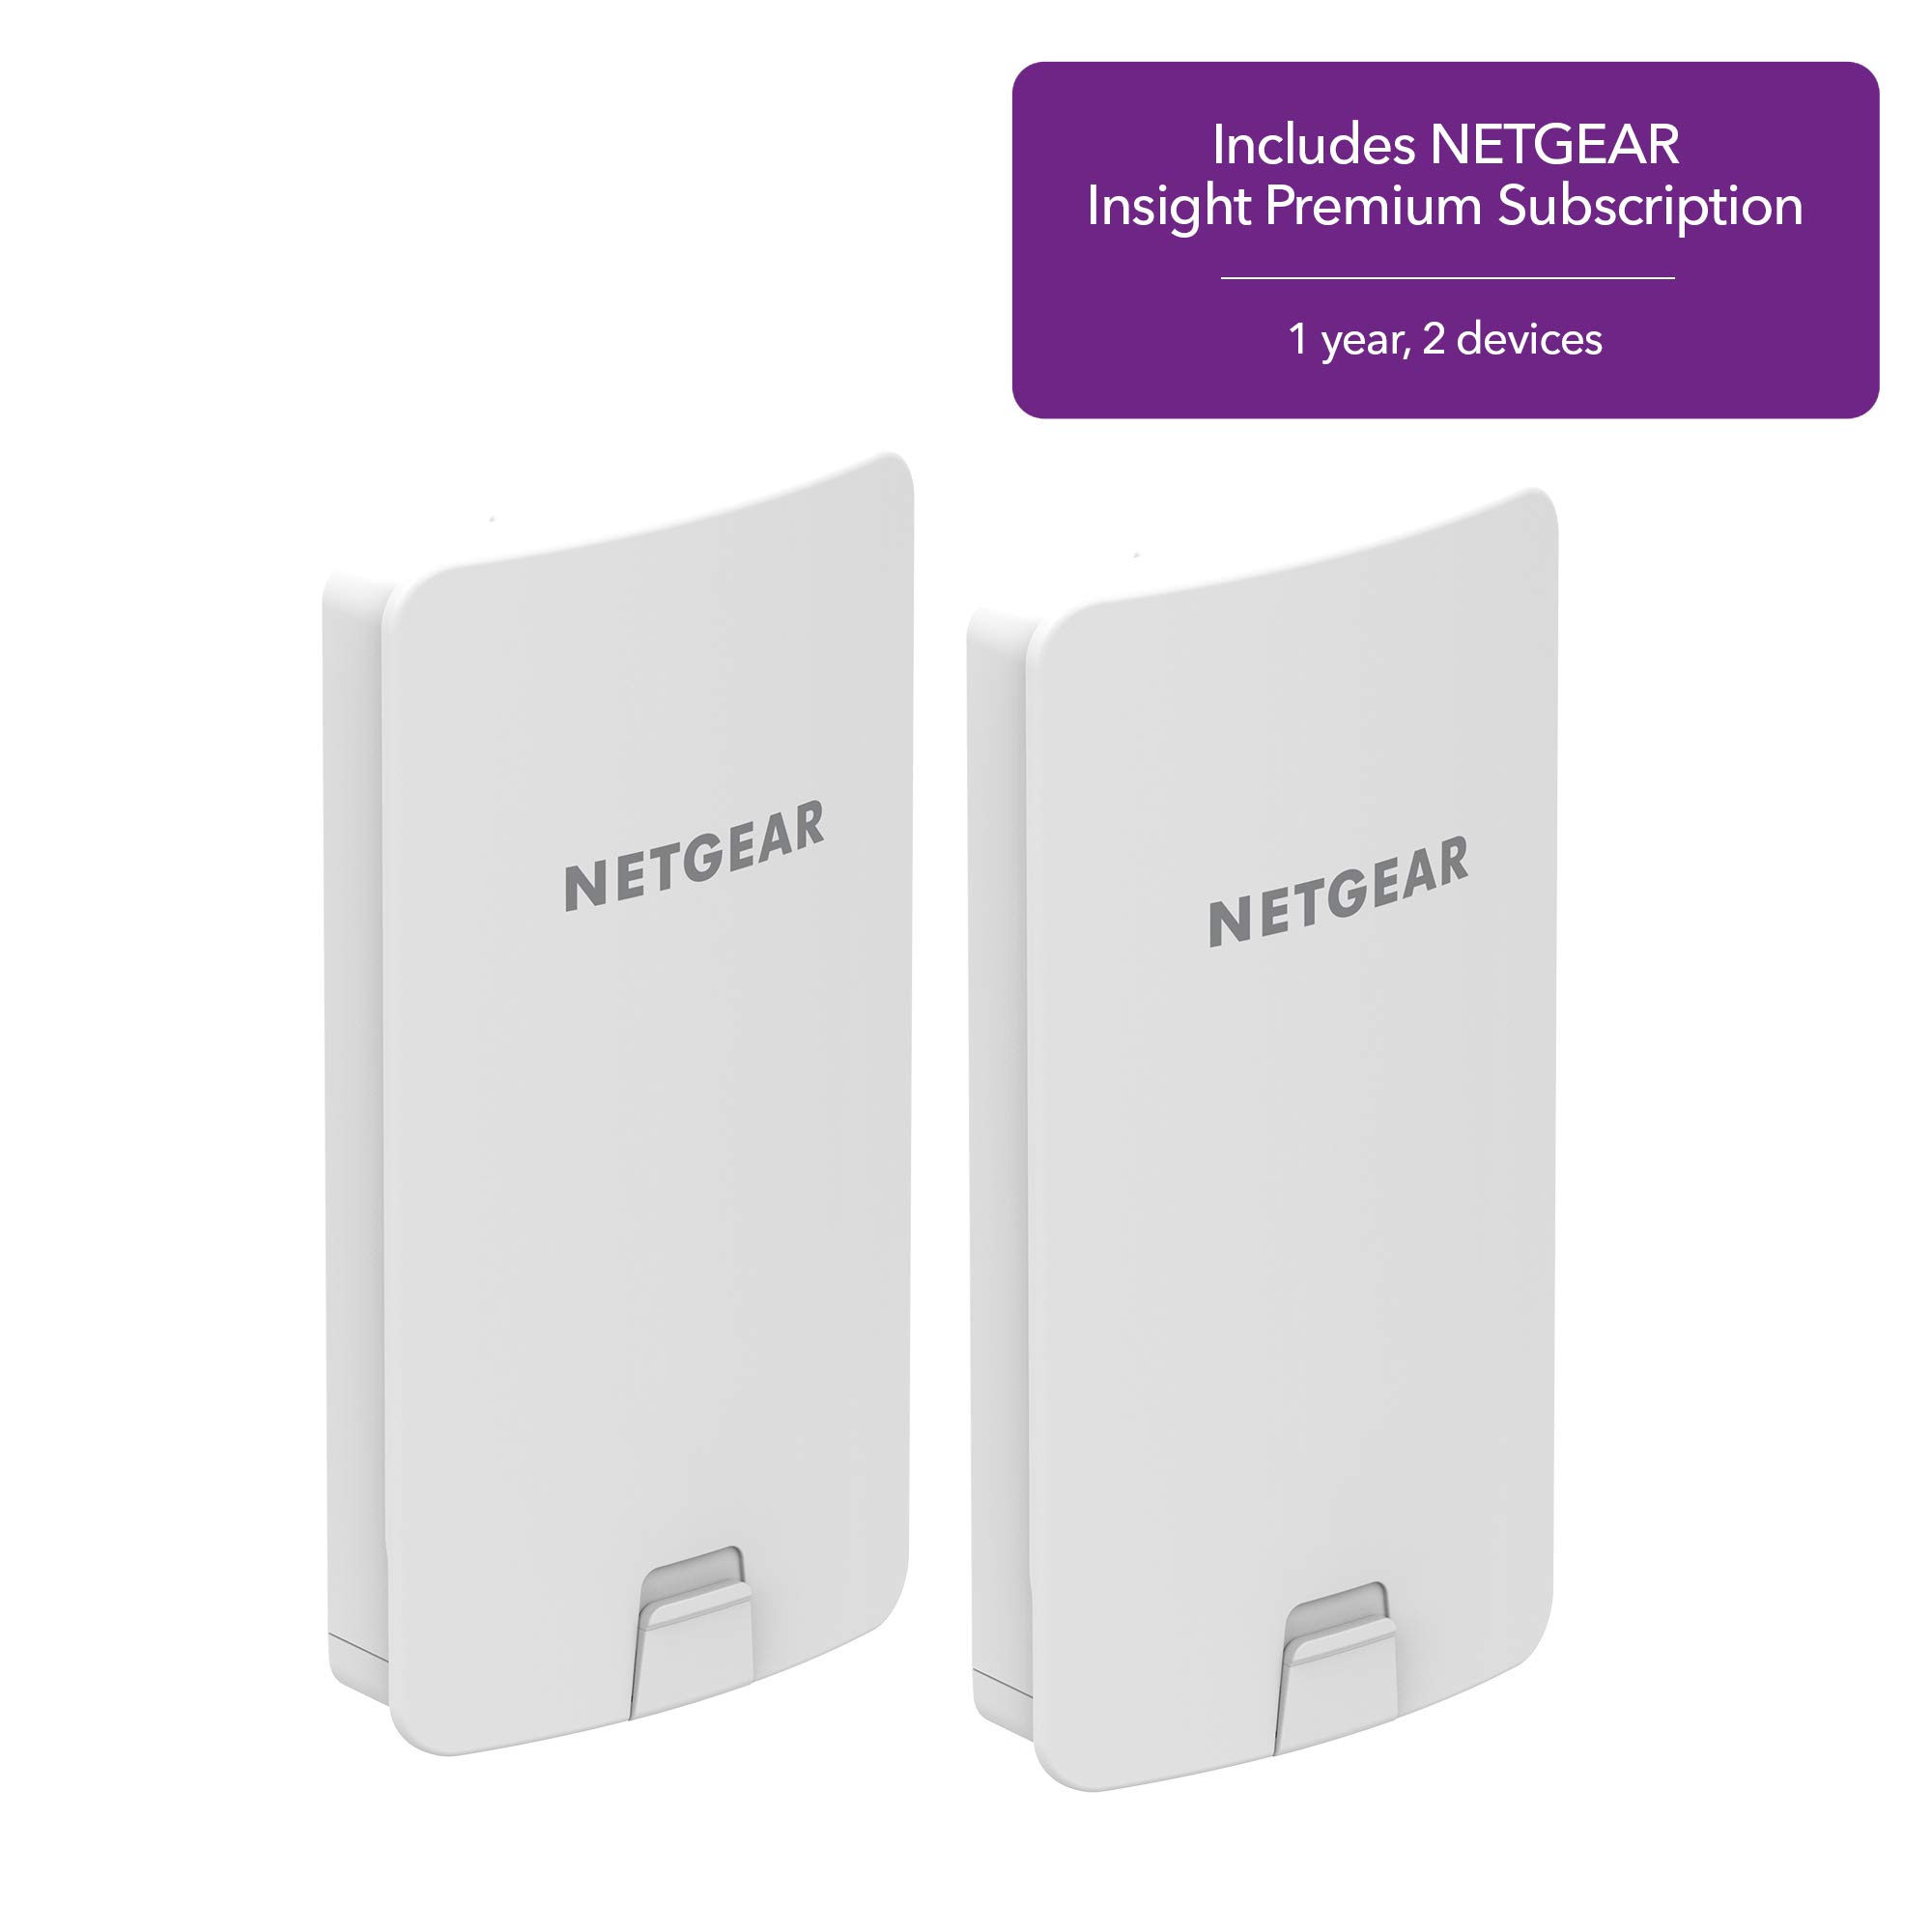 NETGEAR Wireless AirBridge Kit (WBC502) for Long Range Multi-Point or Point-to-Point connectivity, up to 9000 ft, PoE Powered, Insight Premium Included